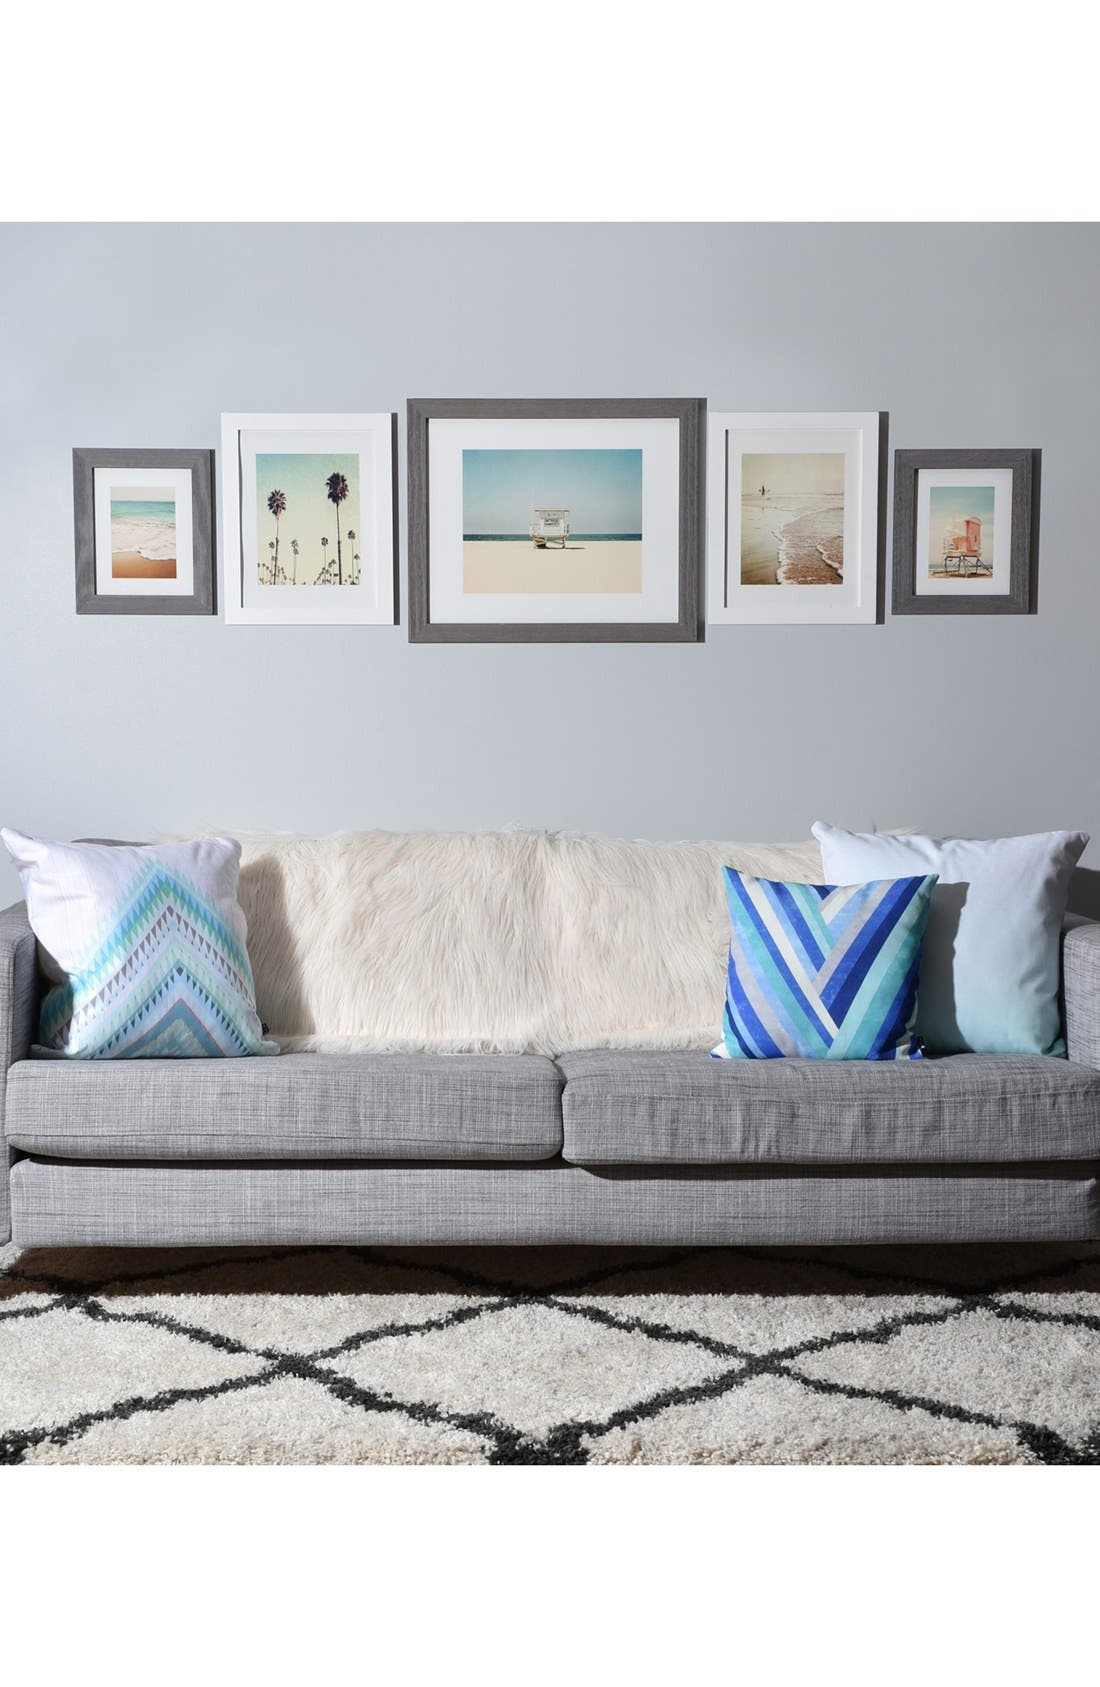 '5th Street' Wall Art Print Set,                             Alternate thumbnail 2, color,                             White